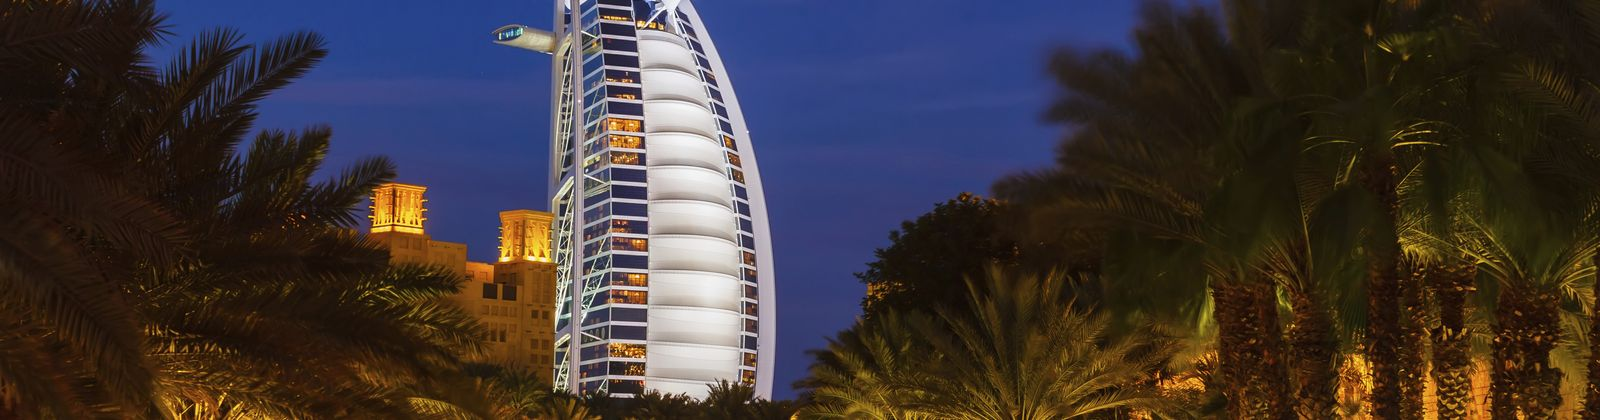 Attractions And Things To Do In Dubai - 10 european attractions every kid should experience